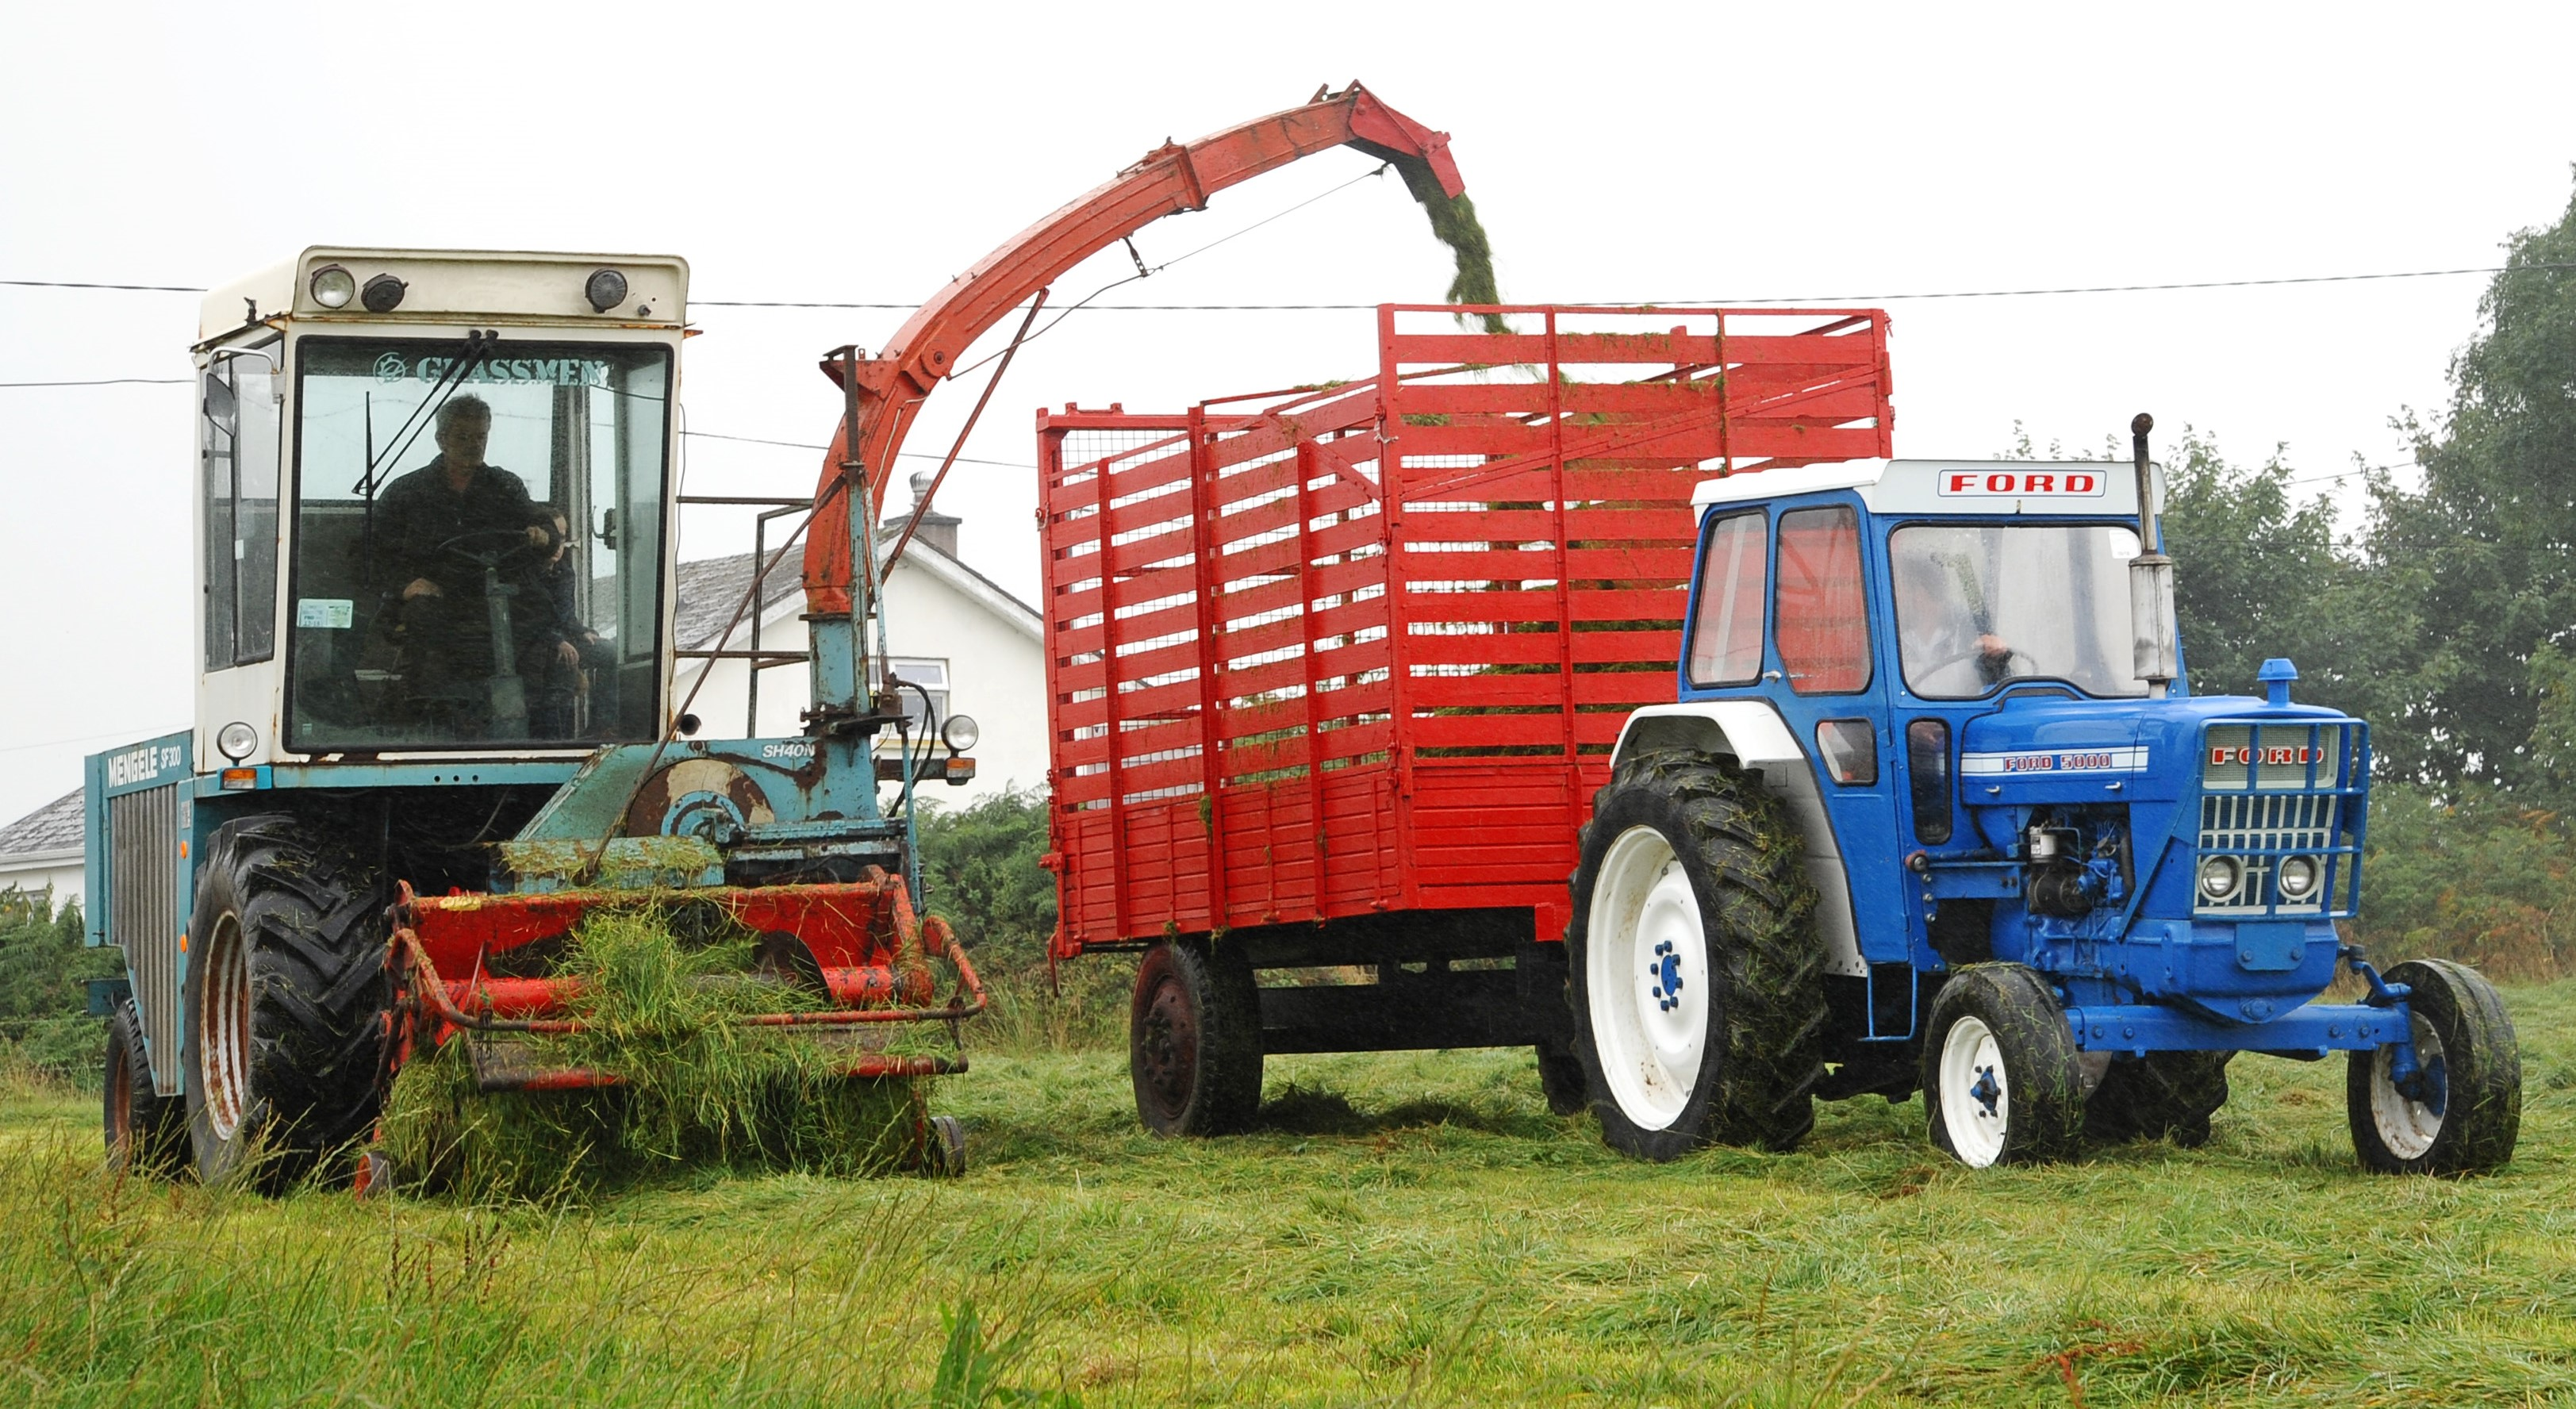 Classic corner: A self-propelled forage harvester with a difference